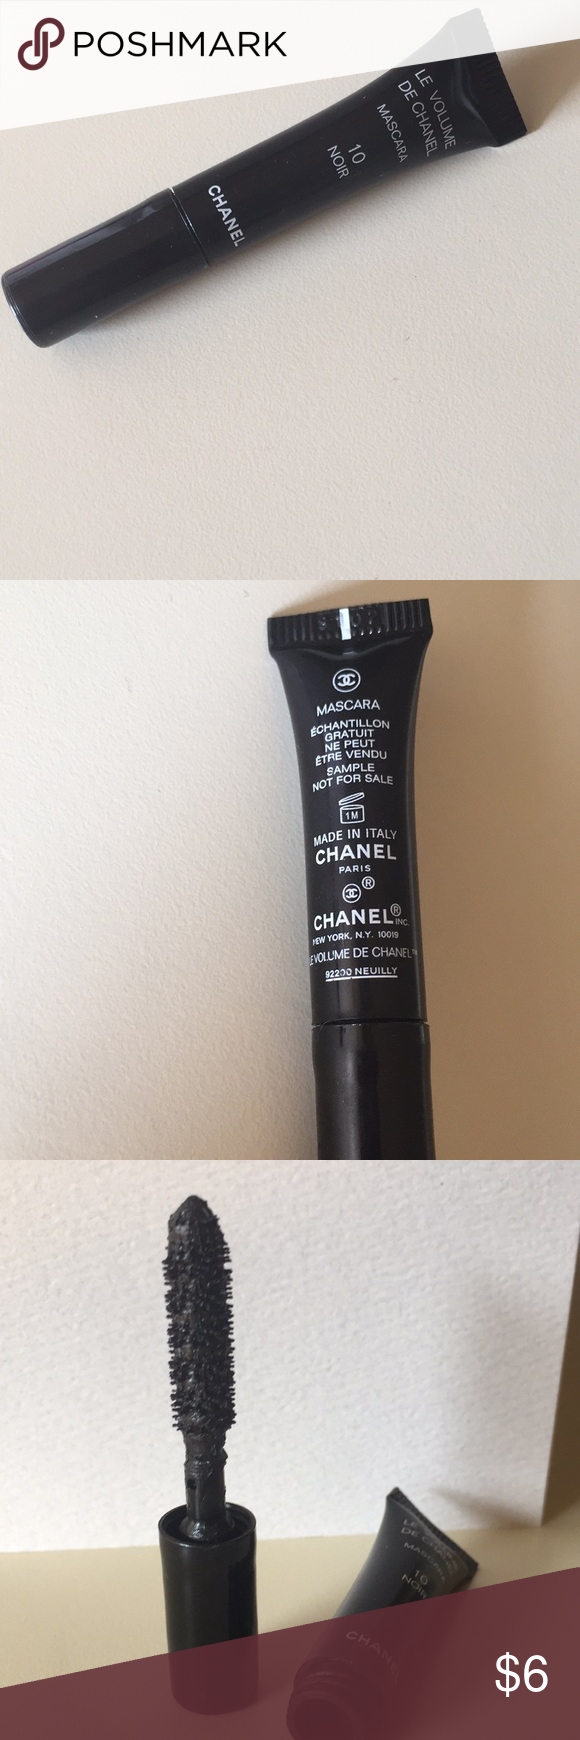 Chanel minimascara NWT Chanel mini, Chanel, Things to sell